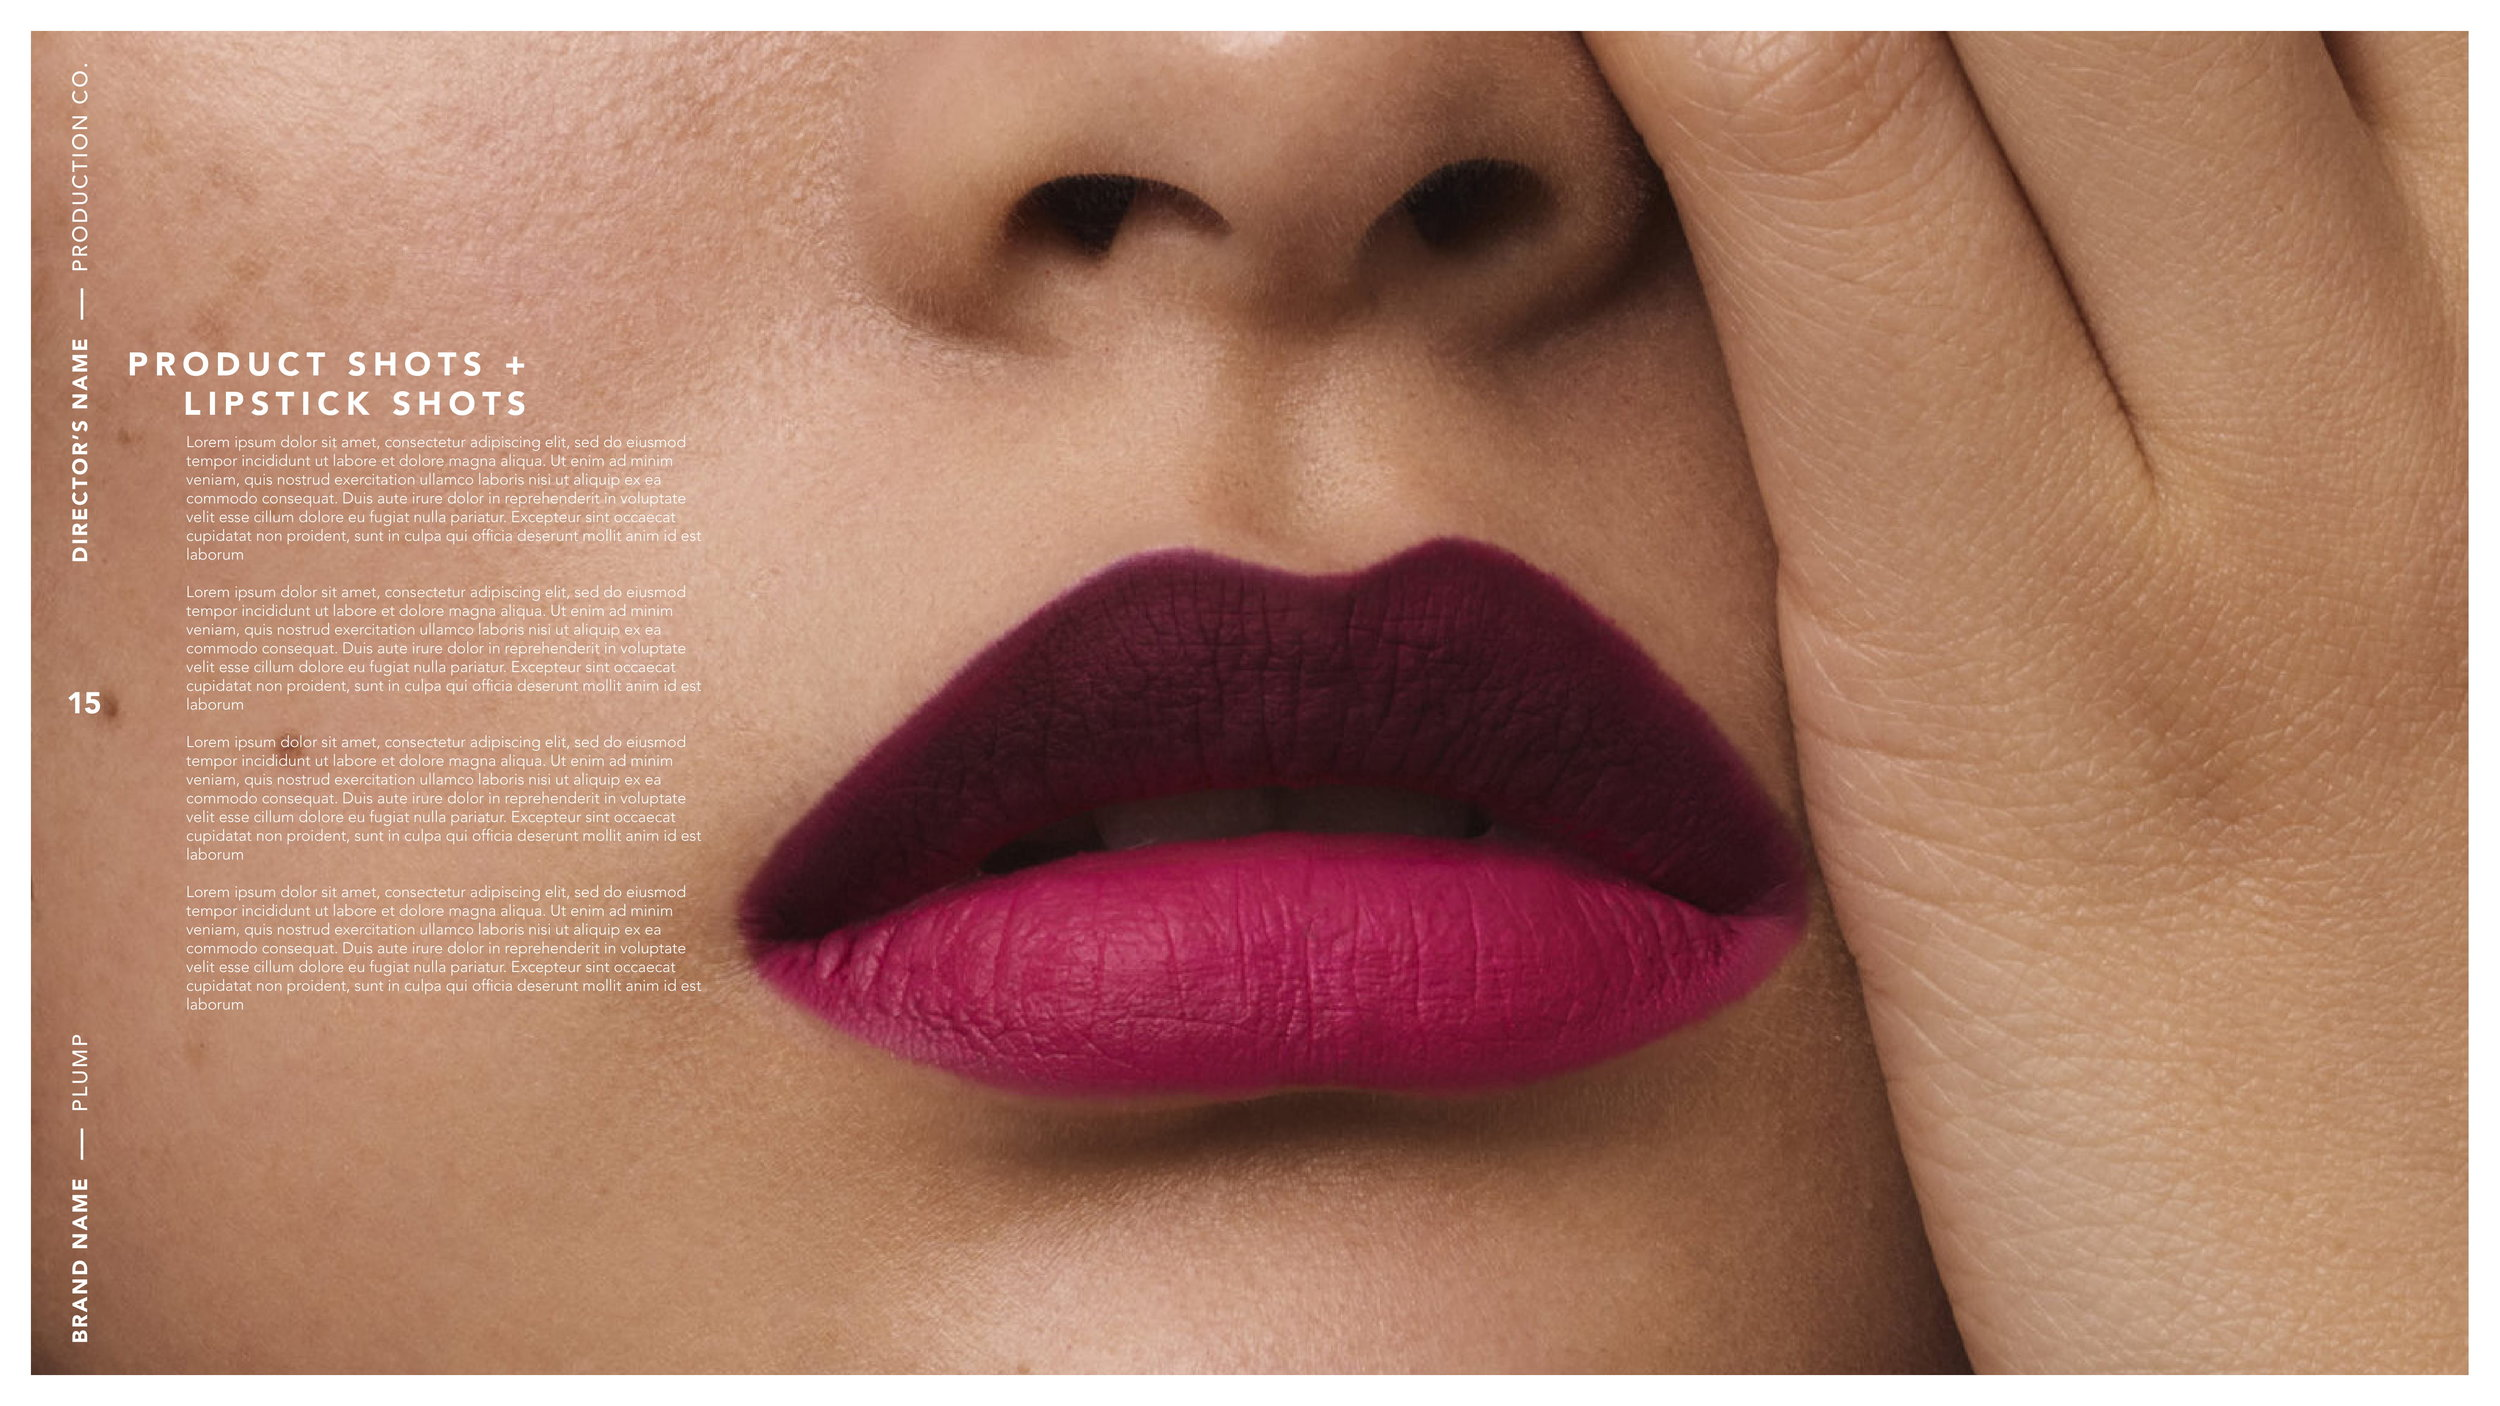 Lips_BLANK_Treatment_00-15.jpg